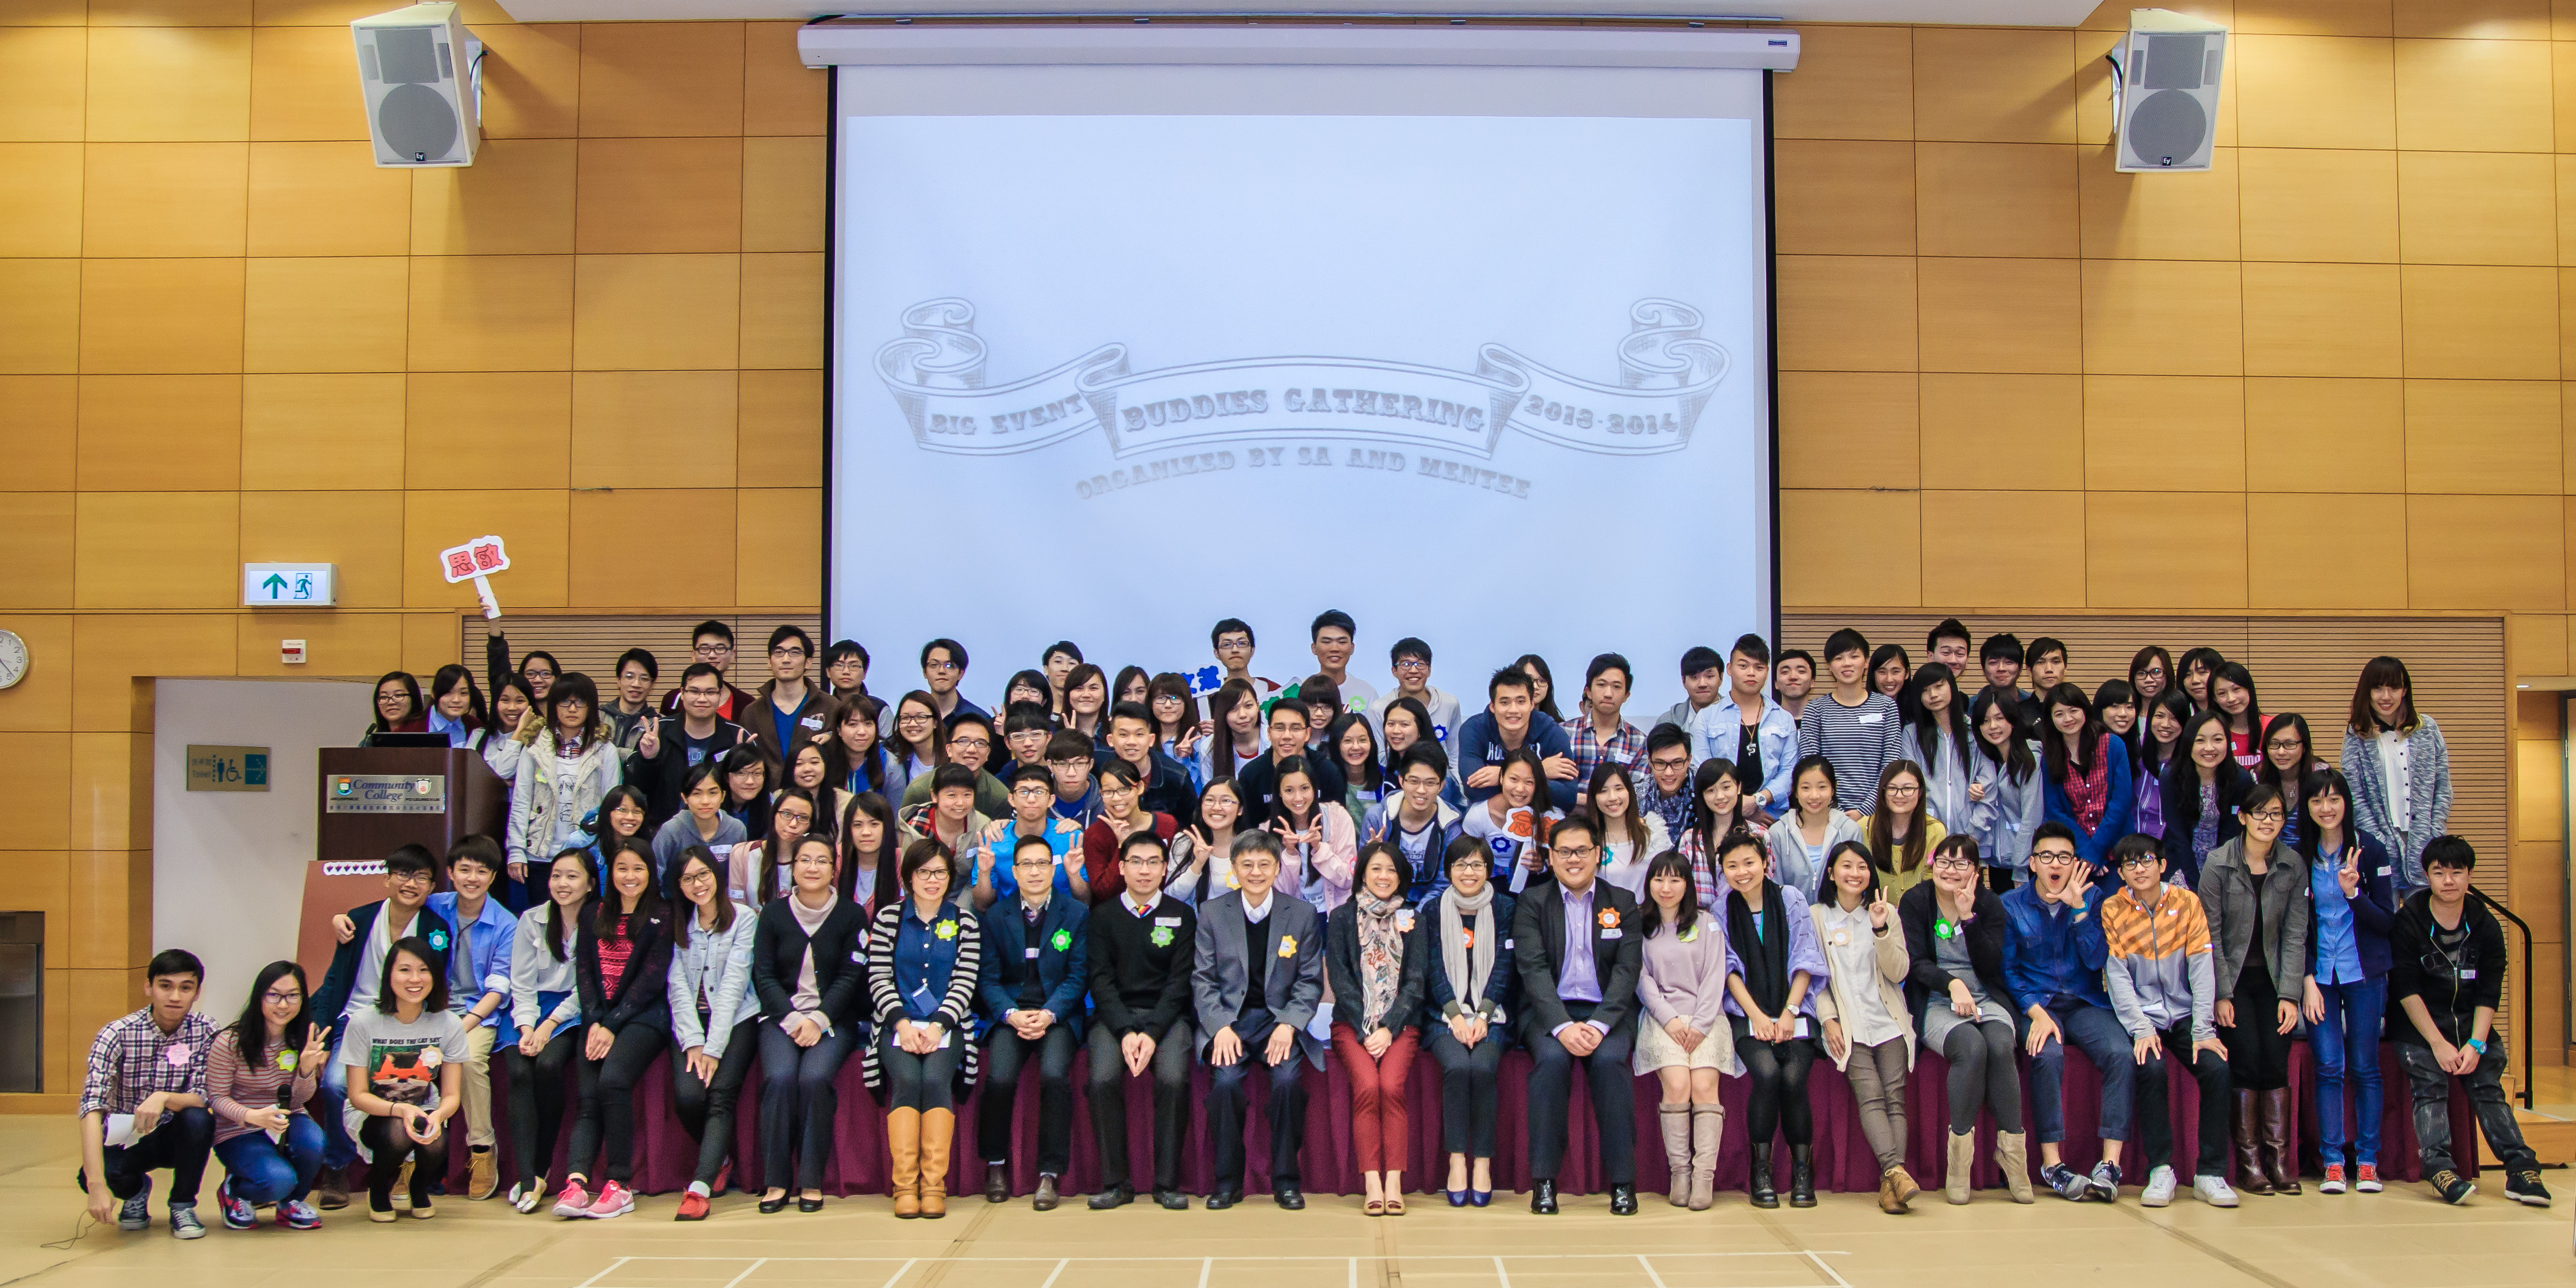 Buddies Gathering 2014 by Student Ambassador & Mentee - Photo - 1